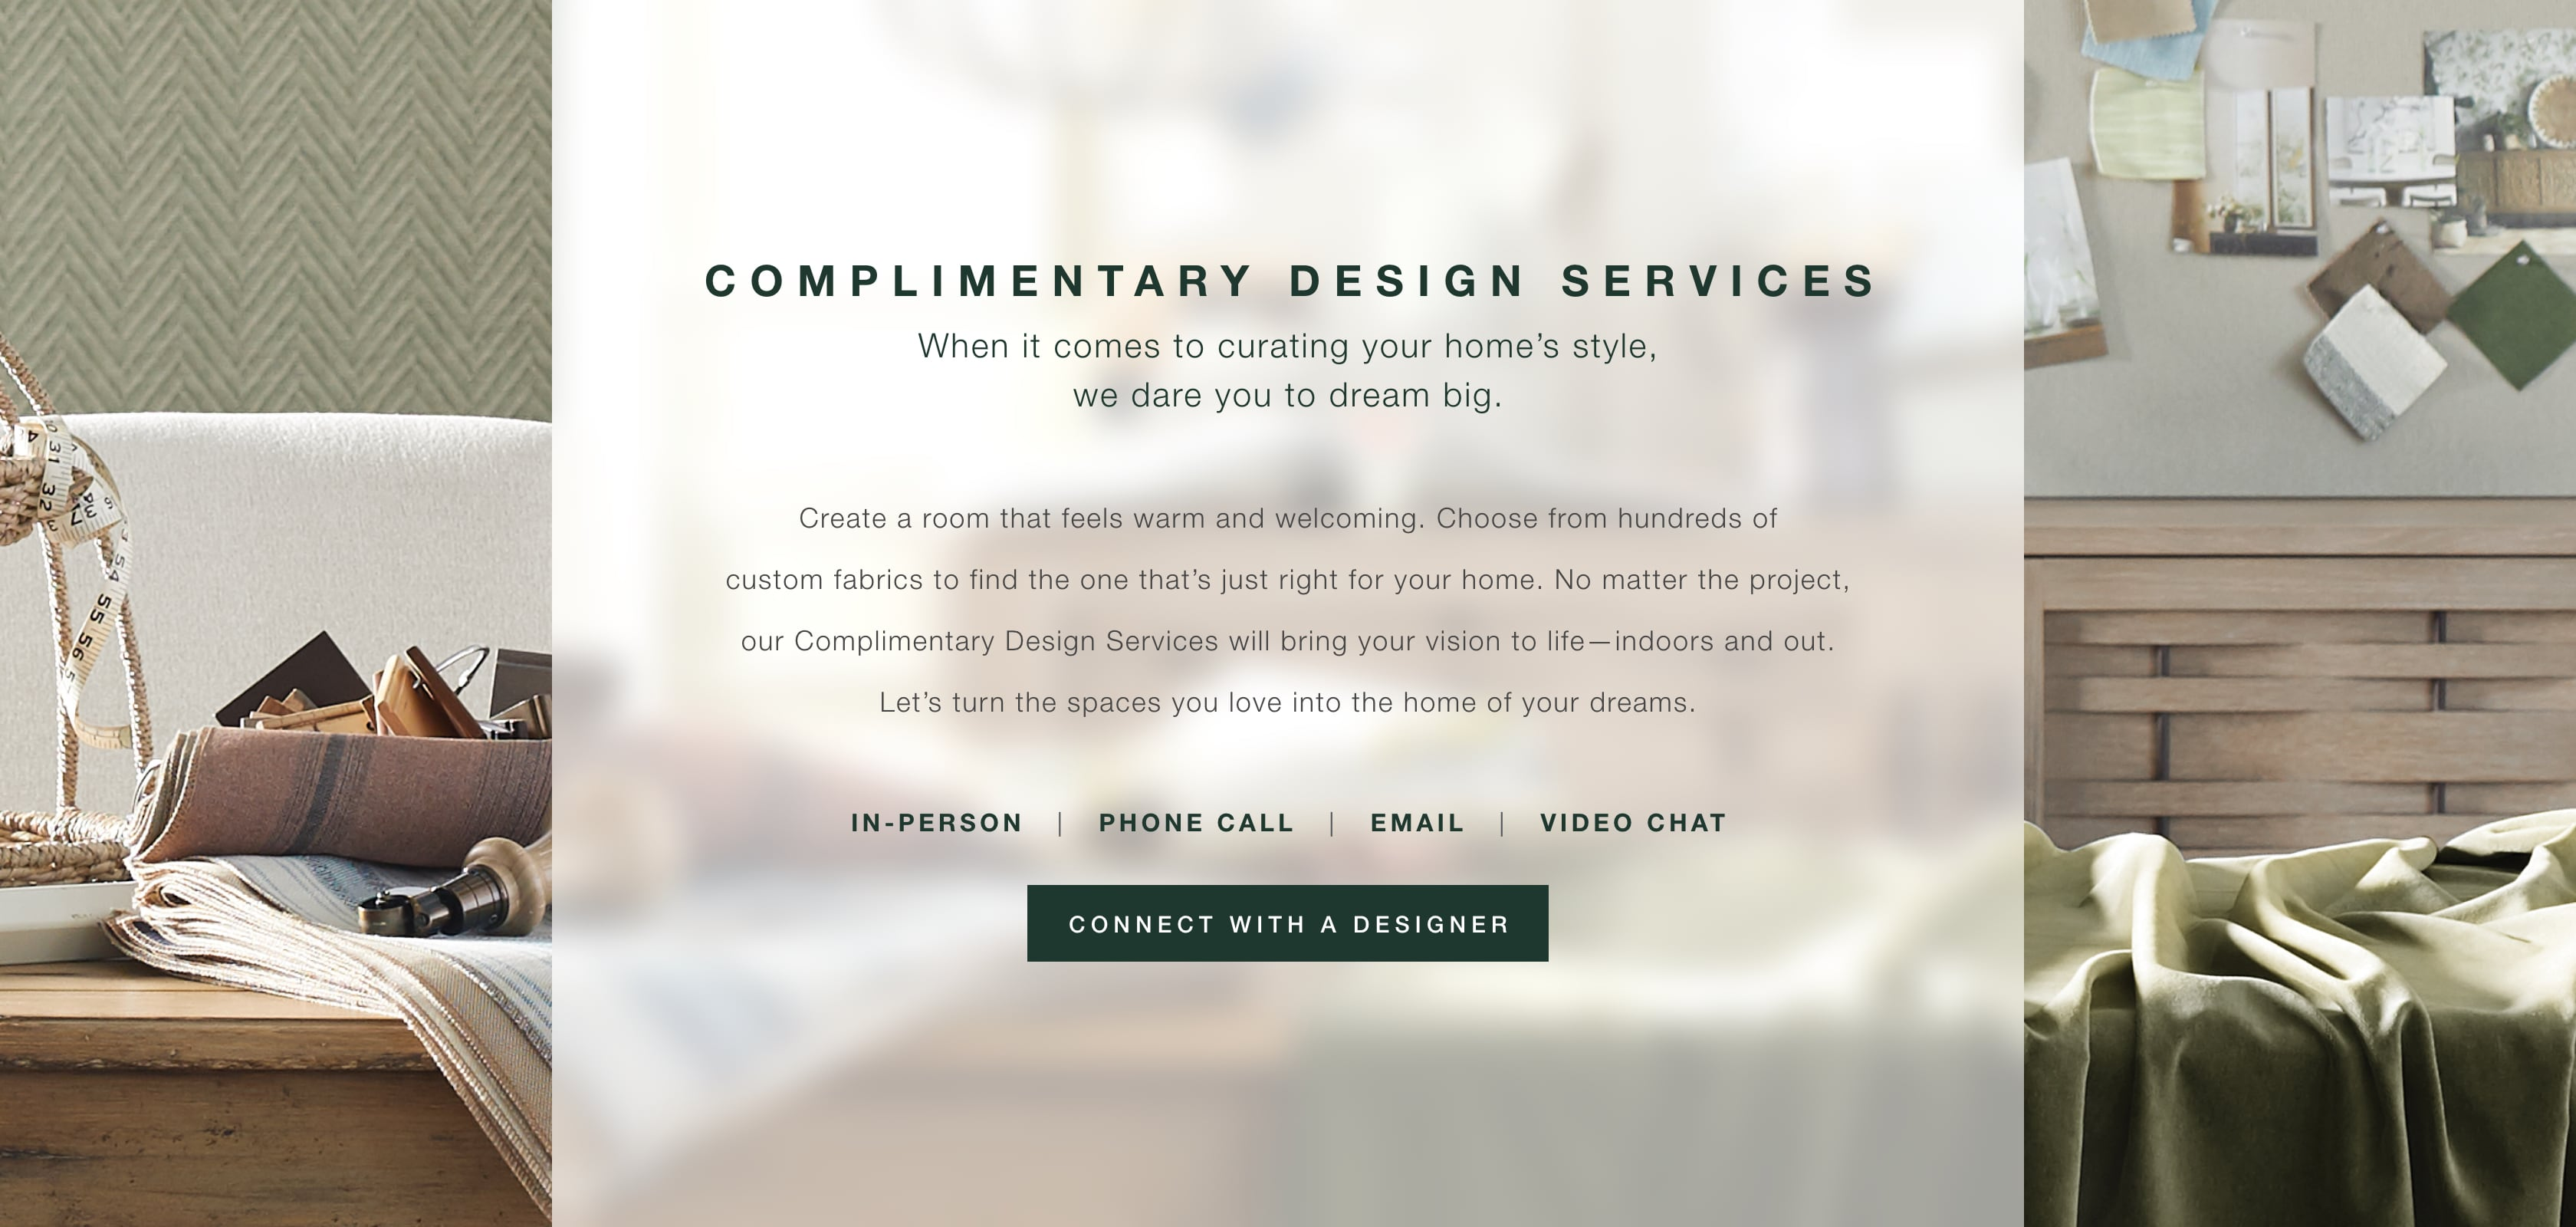 Complimentary Design Services - Connect with a Designer to go from Inspiration to Reality